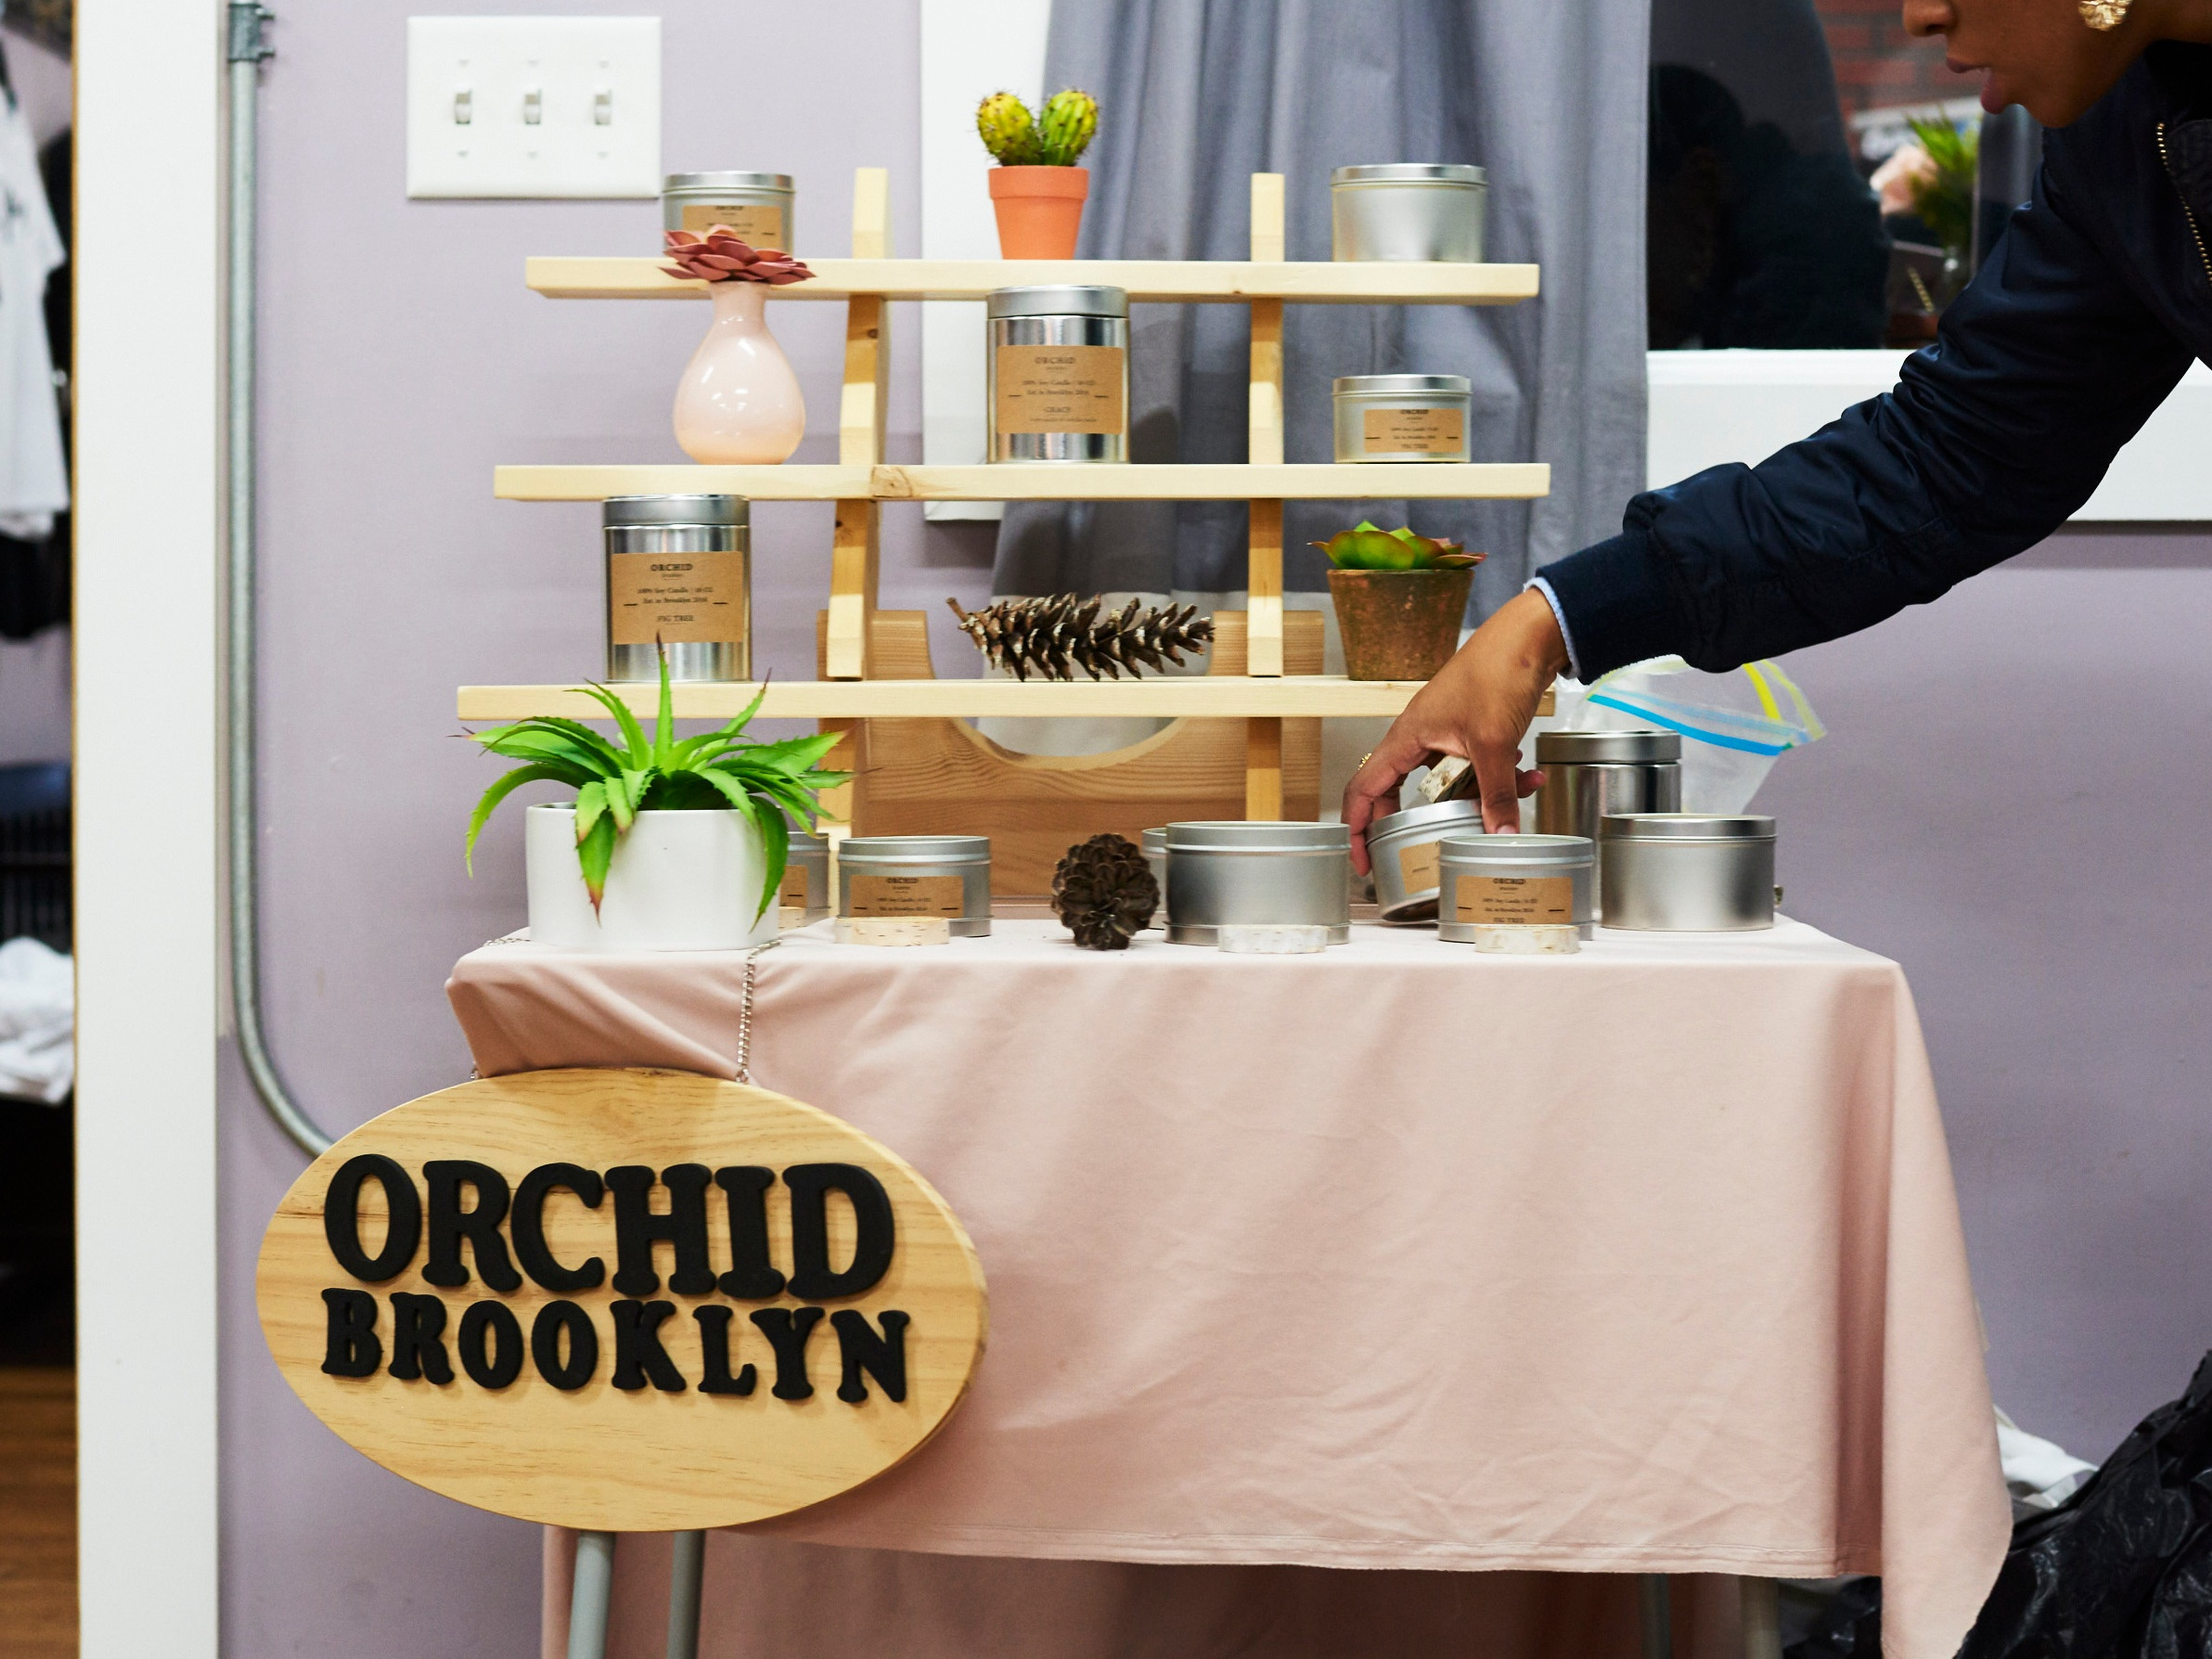 Orchid Brooklyn   - Soy candles